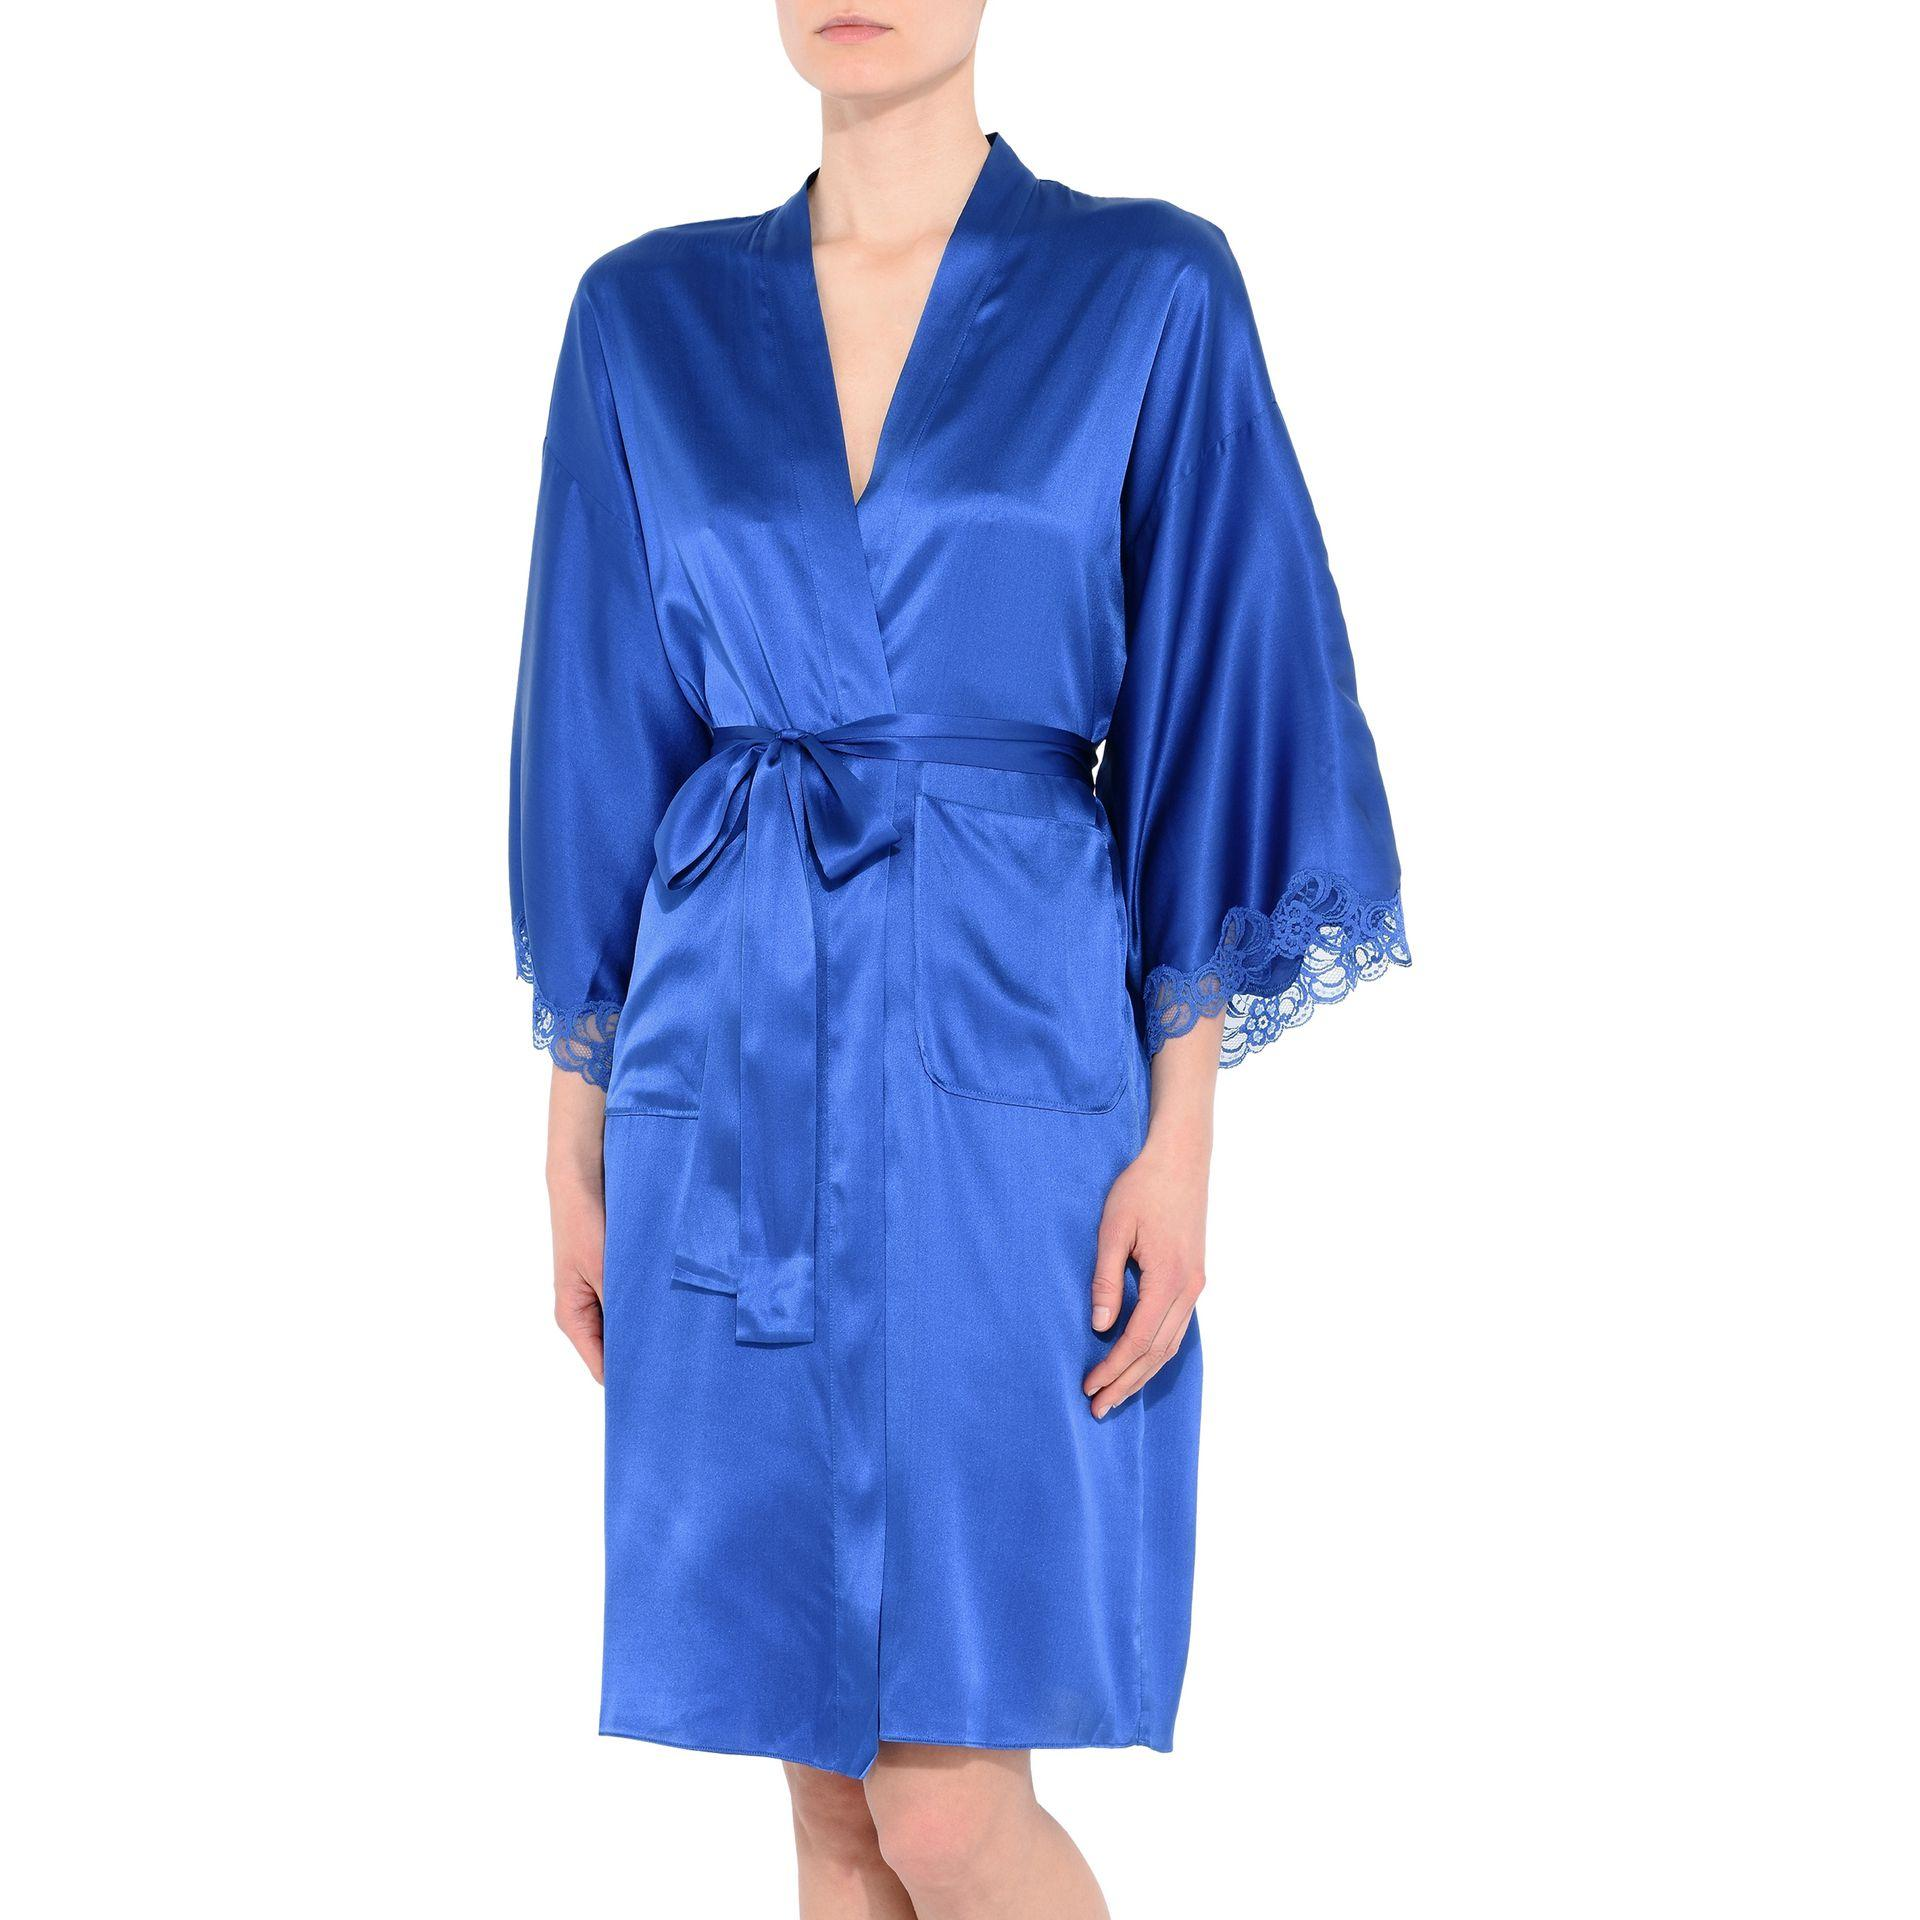 lyst stella mccartney robe in blue. Black Bedroom Furniture Sets. Home Design Ideas